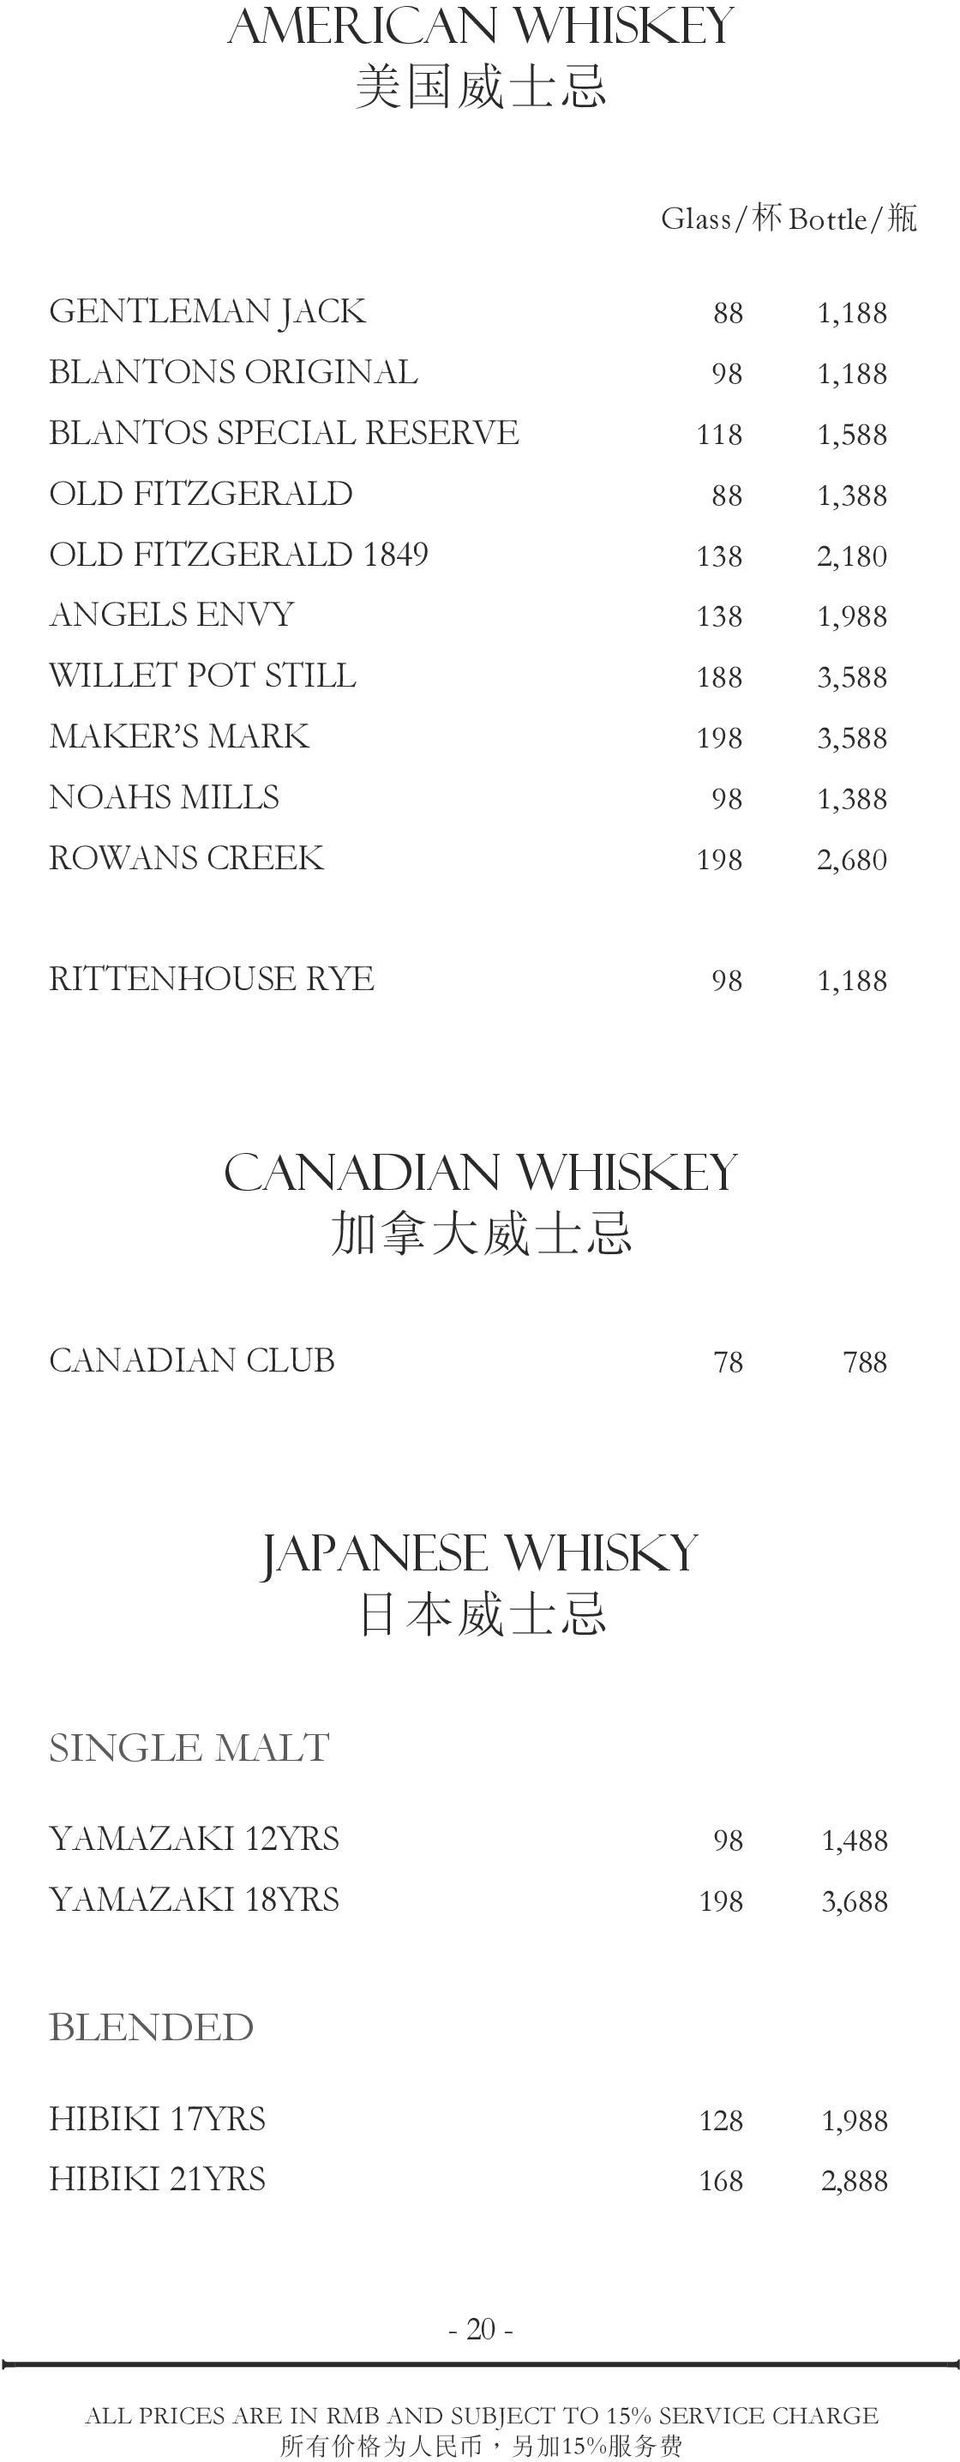 NOAHS MILLS 98 1,388 ROWANS CREEK 198 2,680 RITTENHOUSE RYE 98 1,188 CANADIAN WHISKEY 加 拿 大 威 士 忌 CANADIAN CLUB 78 788 JAPANESE